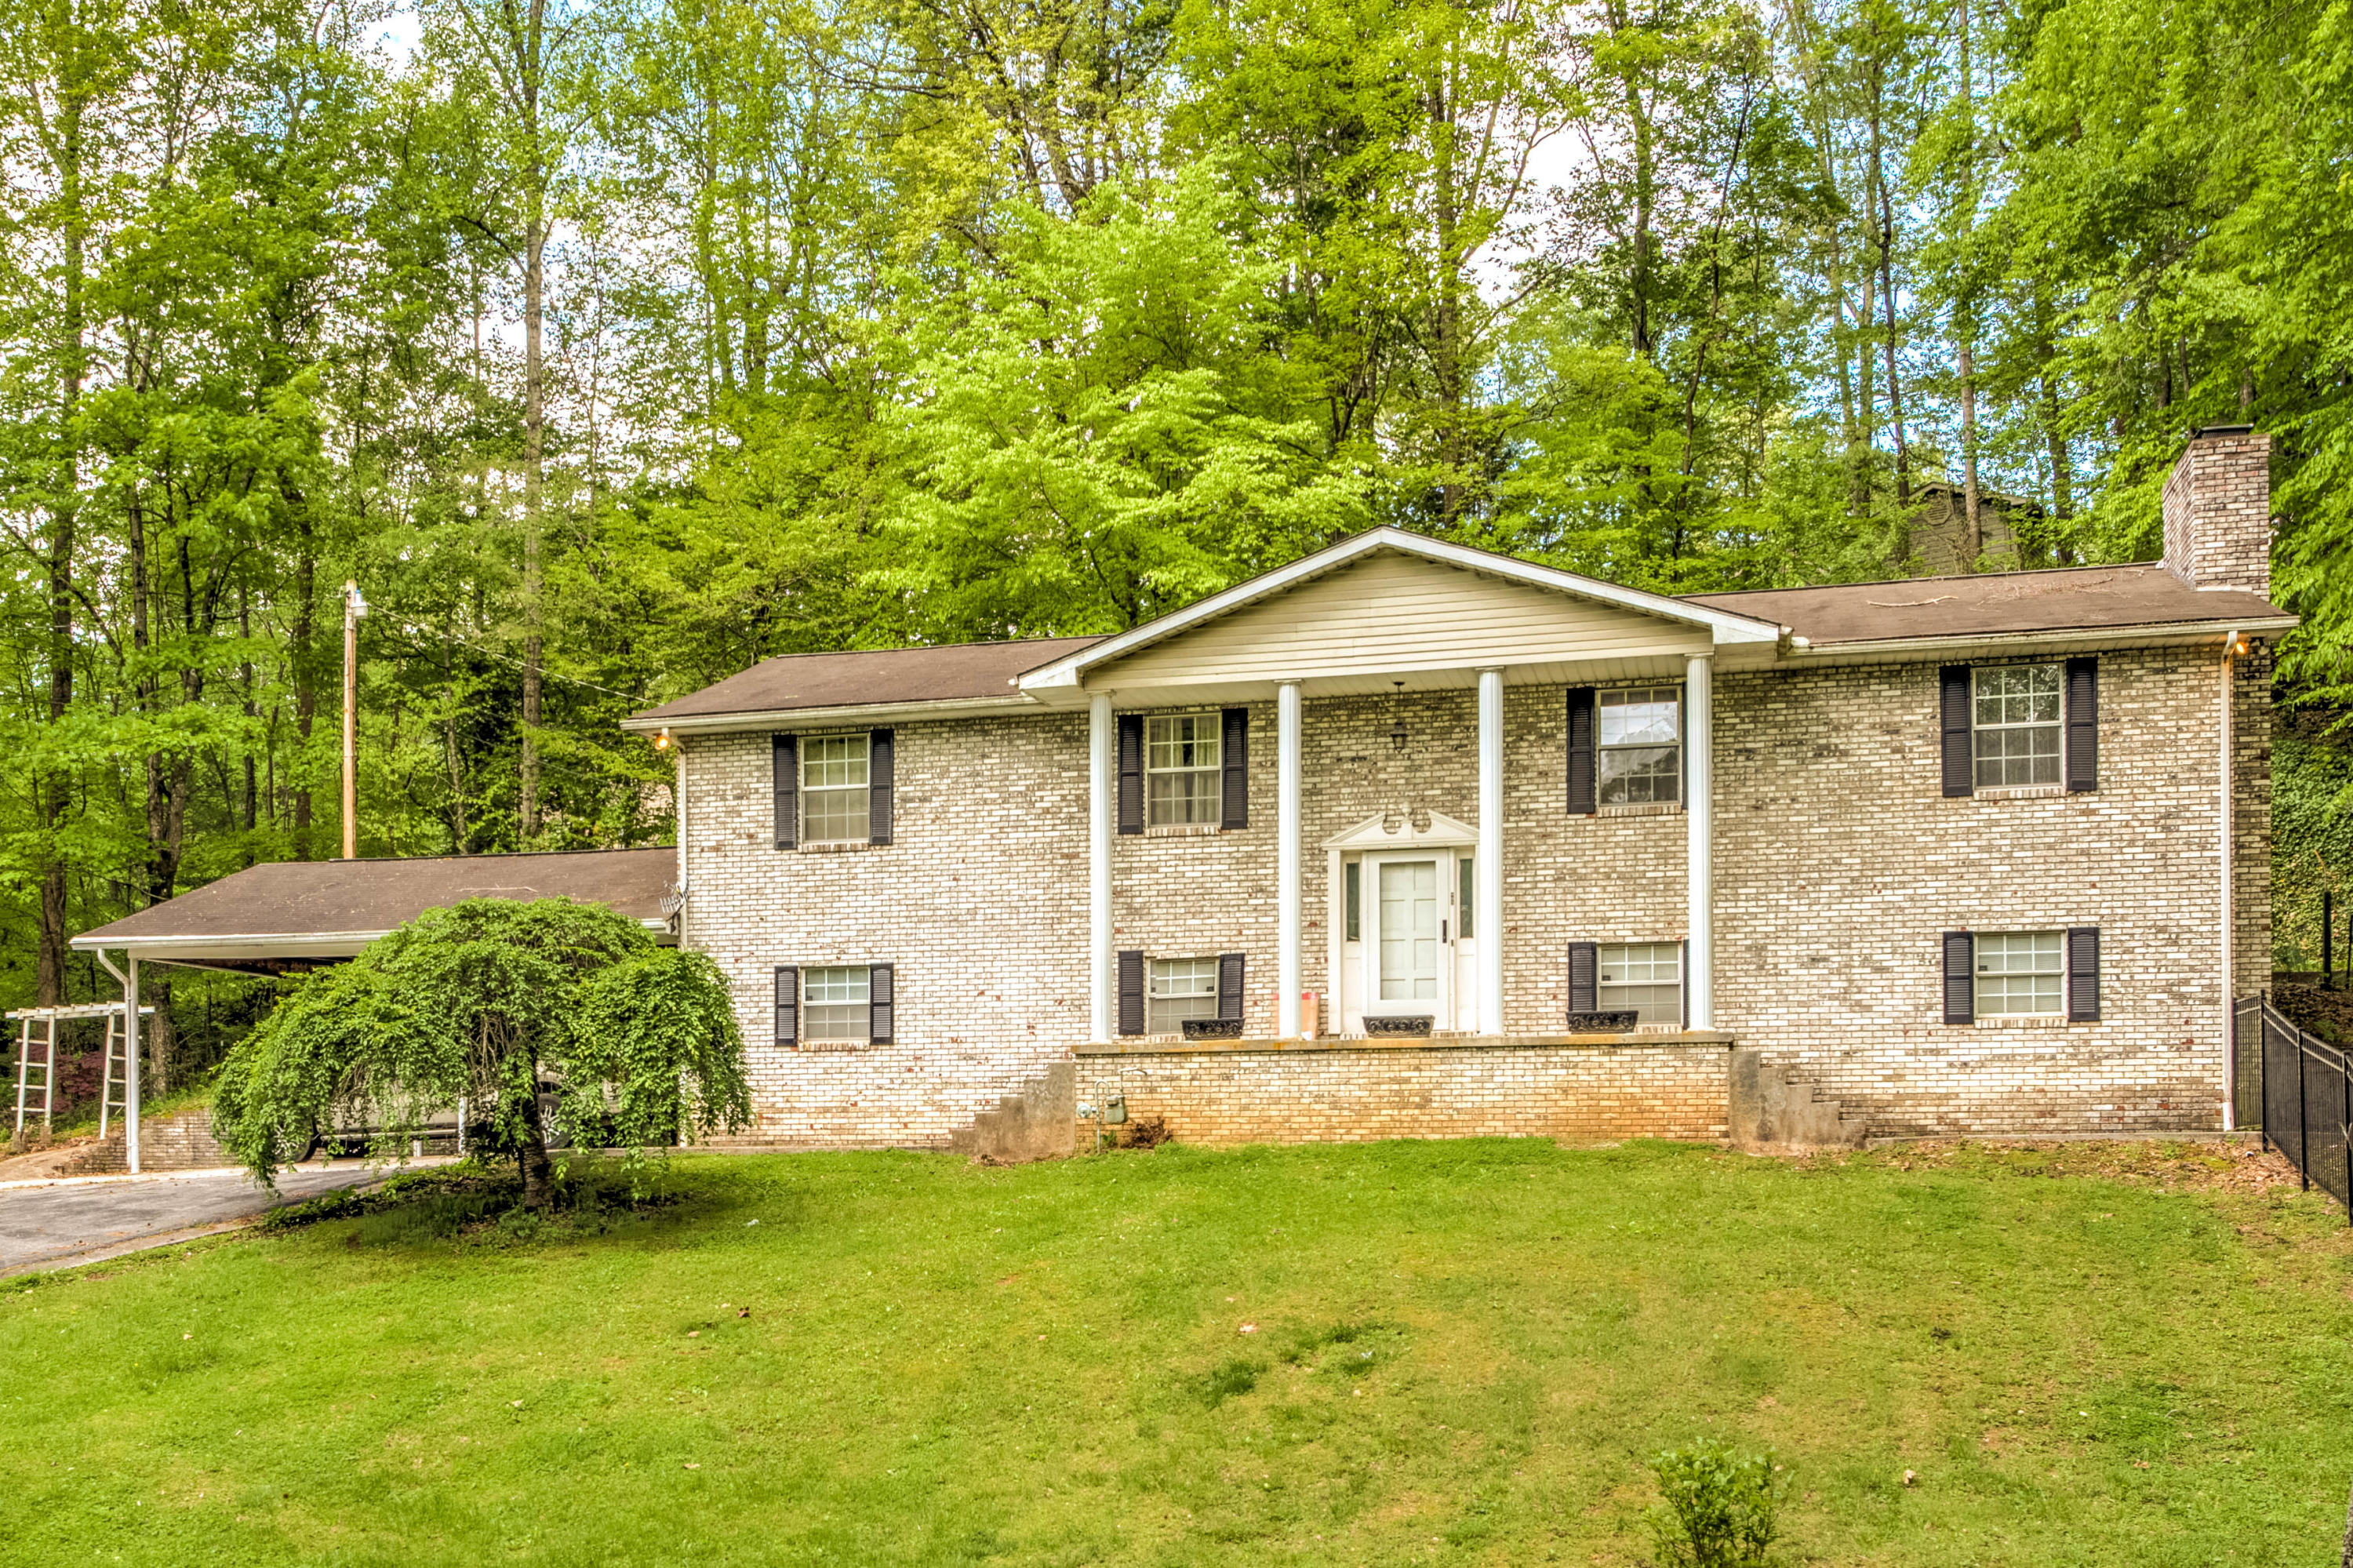 20200430145034734912000000-o Listings anderson county homes for sale